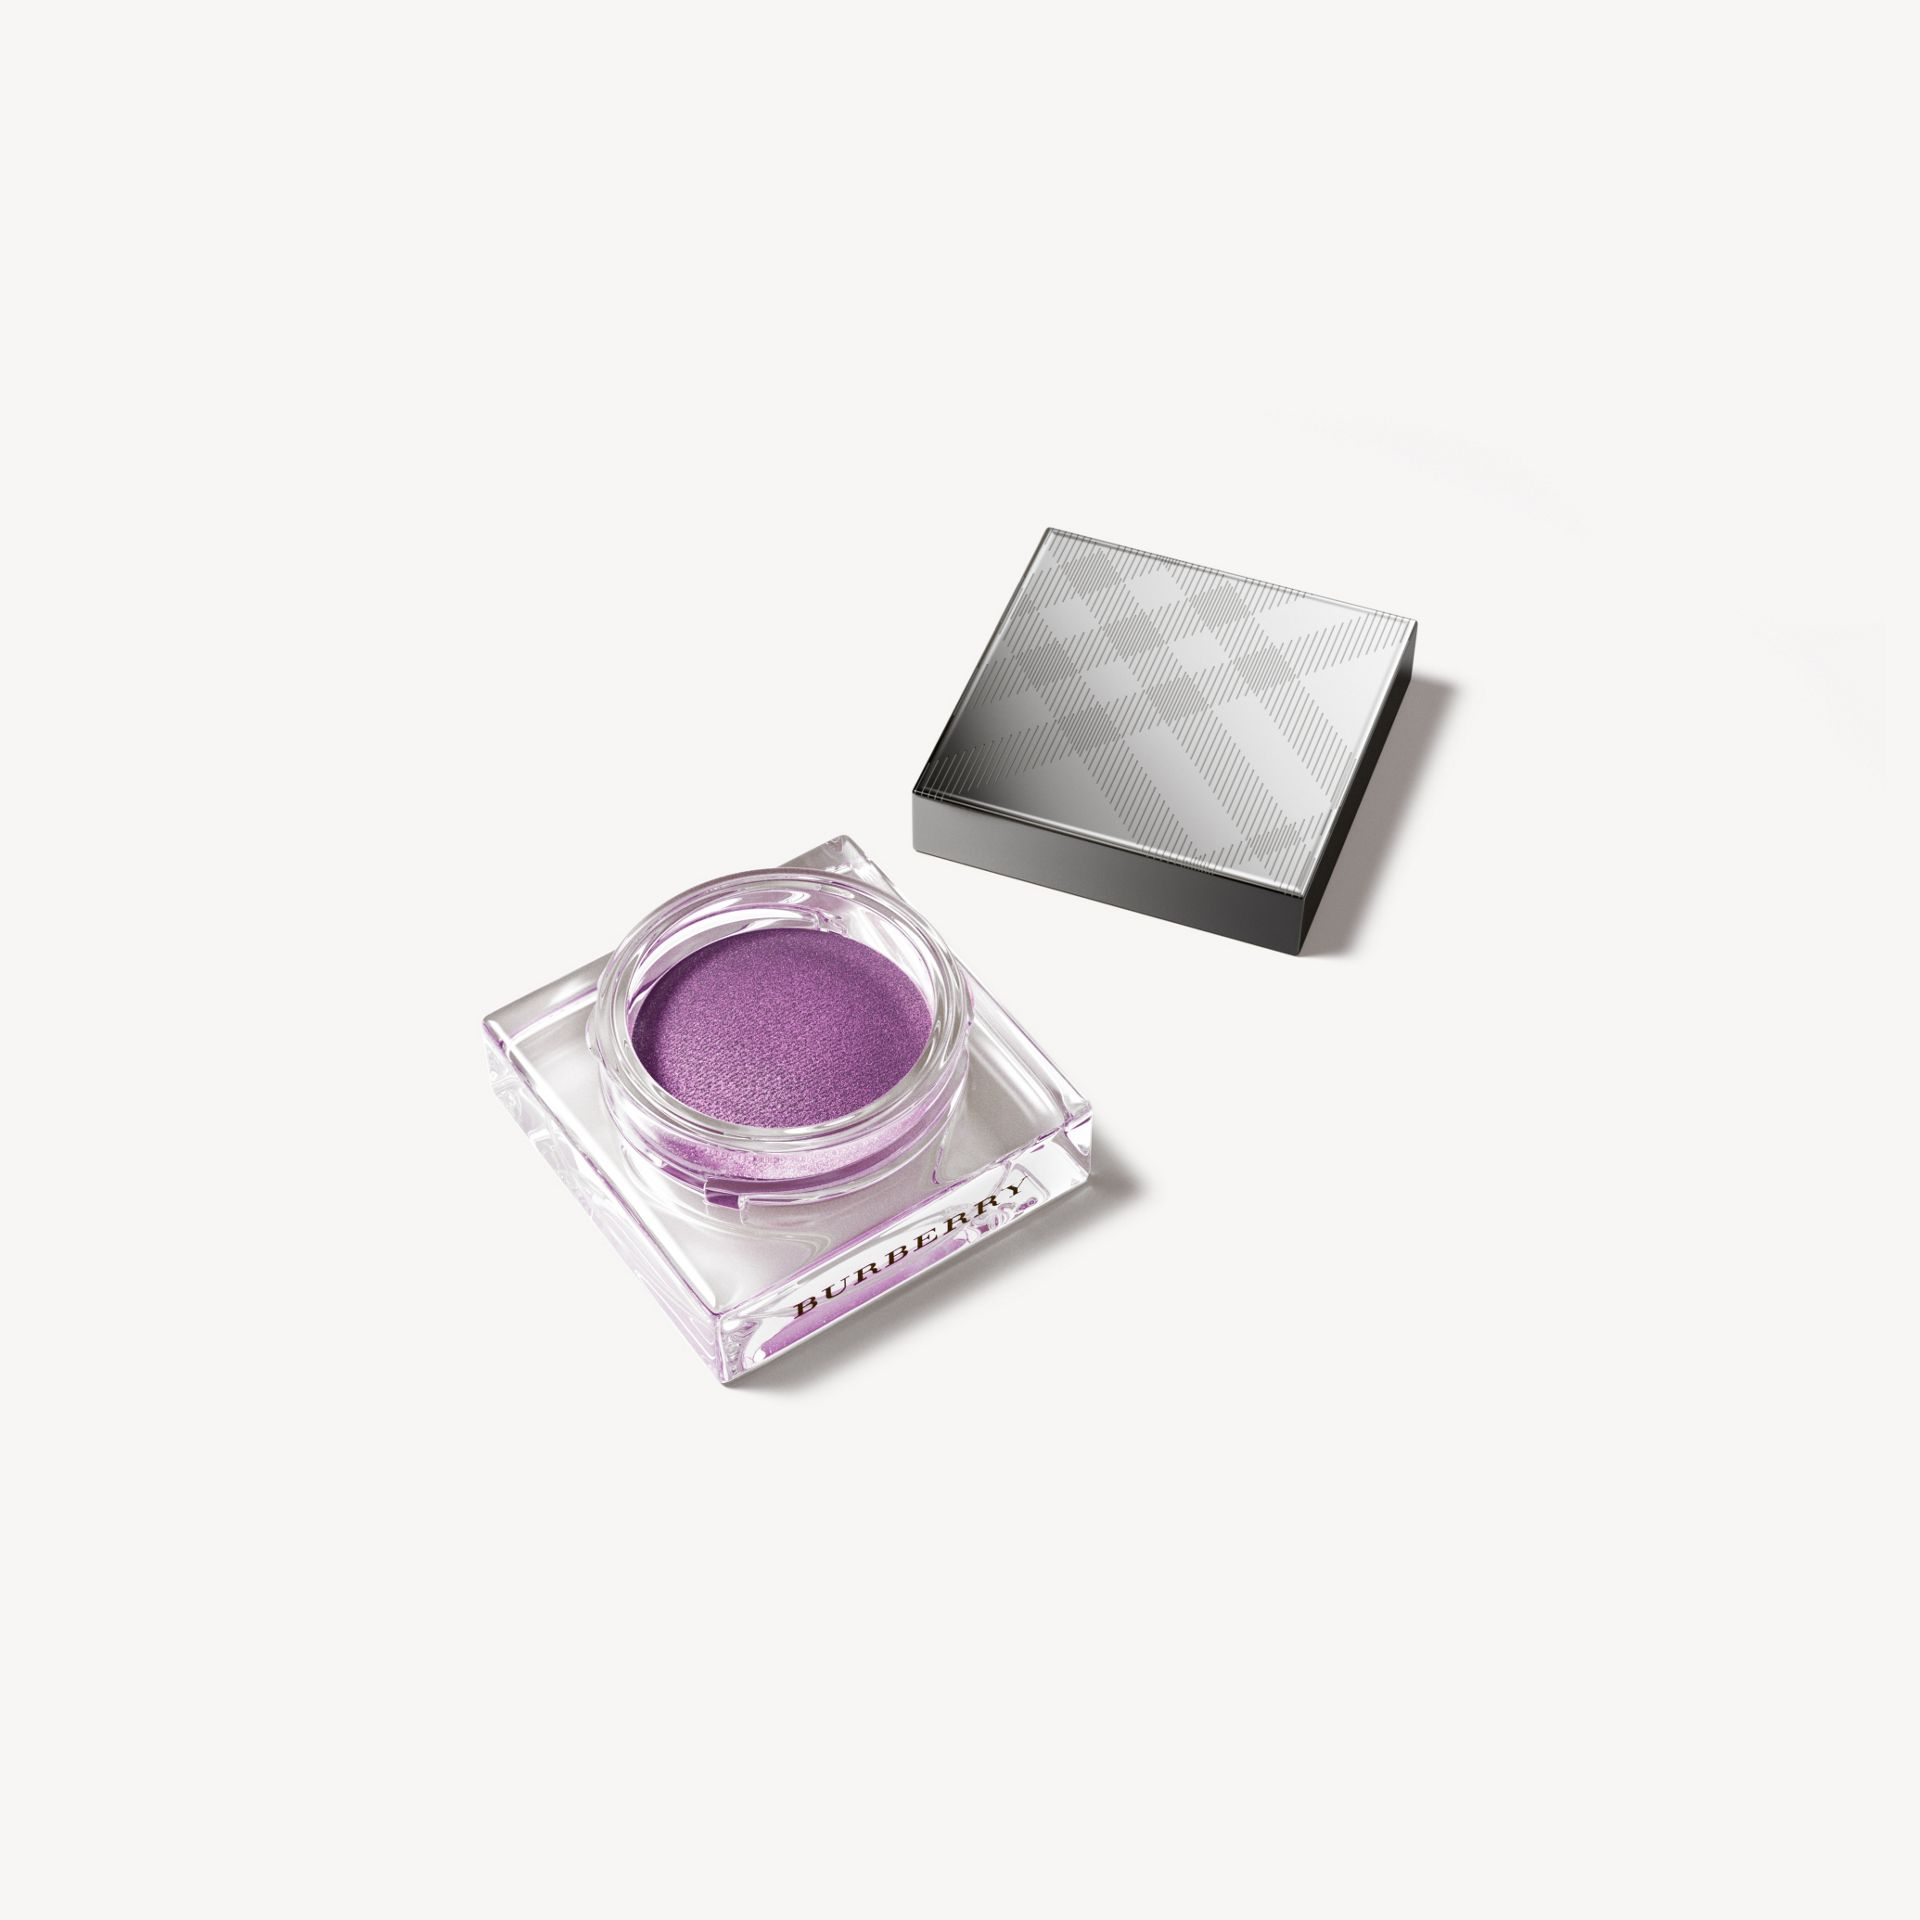 Damson 110 Eye Colour Cream – Damson No.110 - gallery image 1